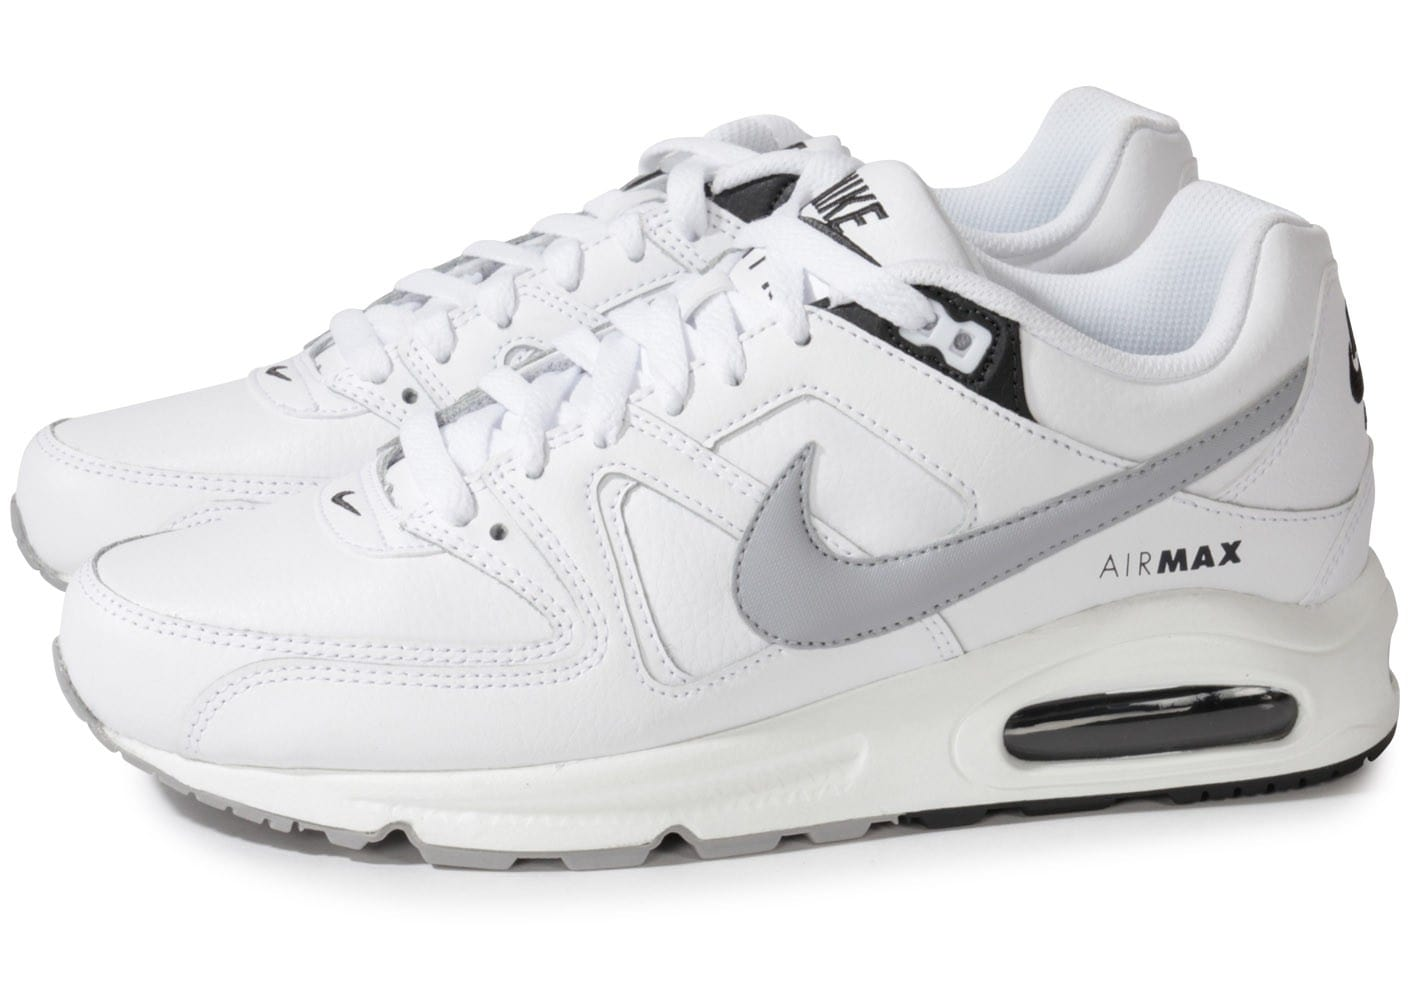 chaussures de sport b6bdb 760d8 Nike Air Max Command Blanche - Chaussures Baskets homme ...